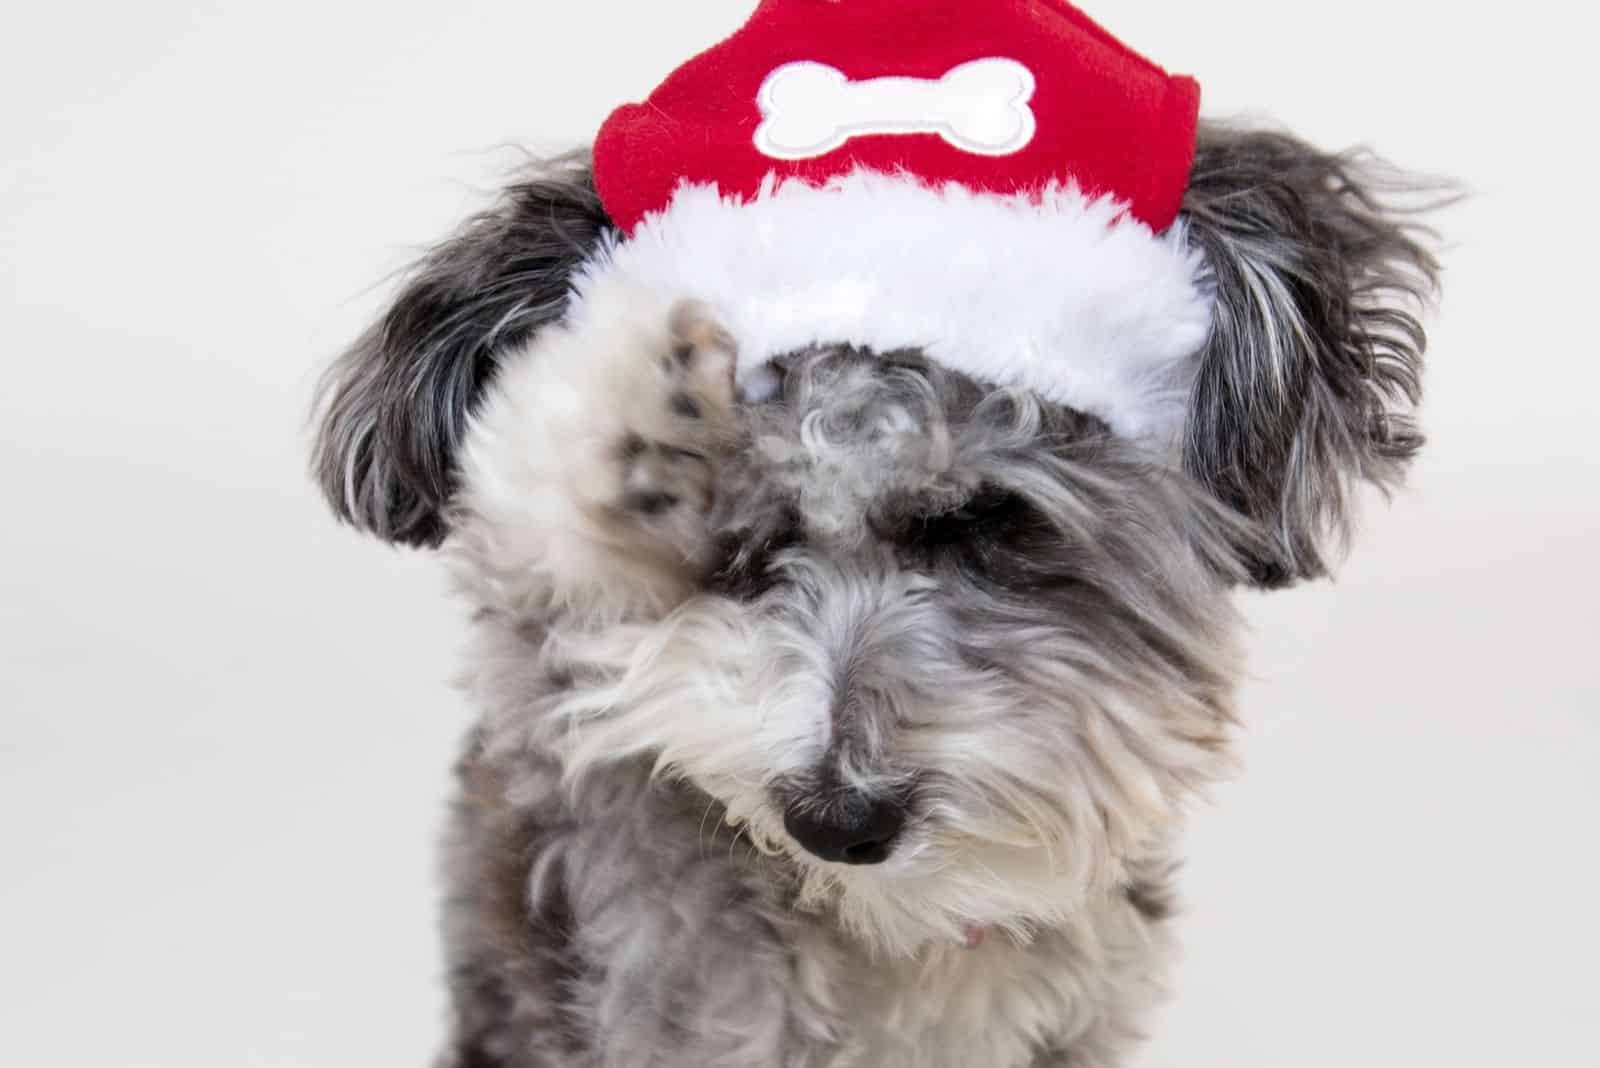 puppy merle poodle with a santa hat in close up photography